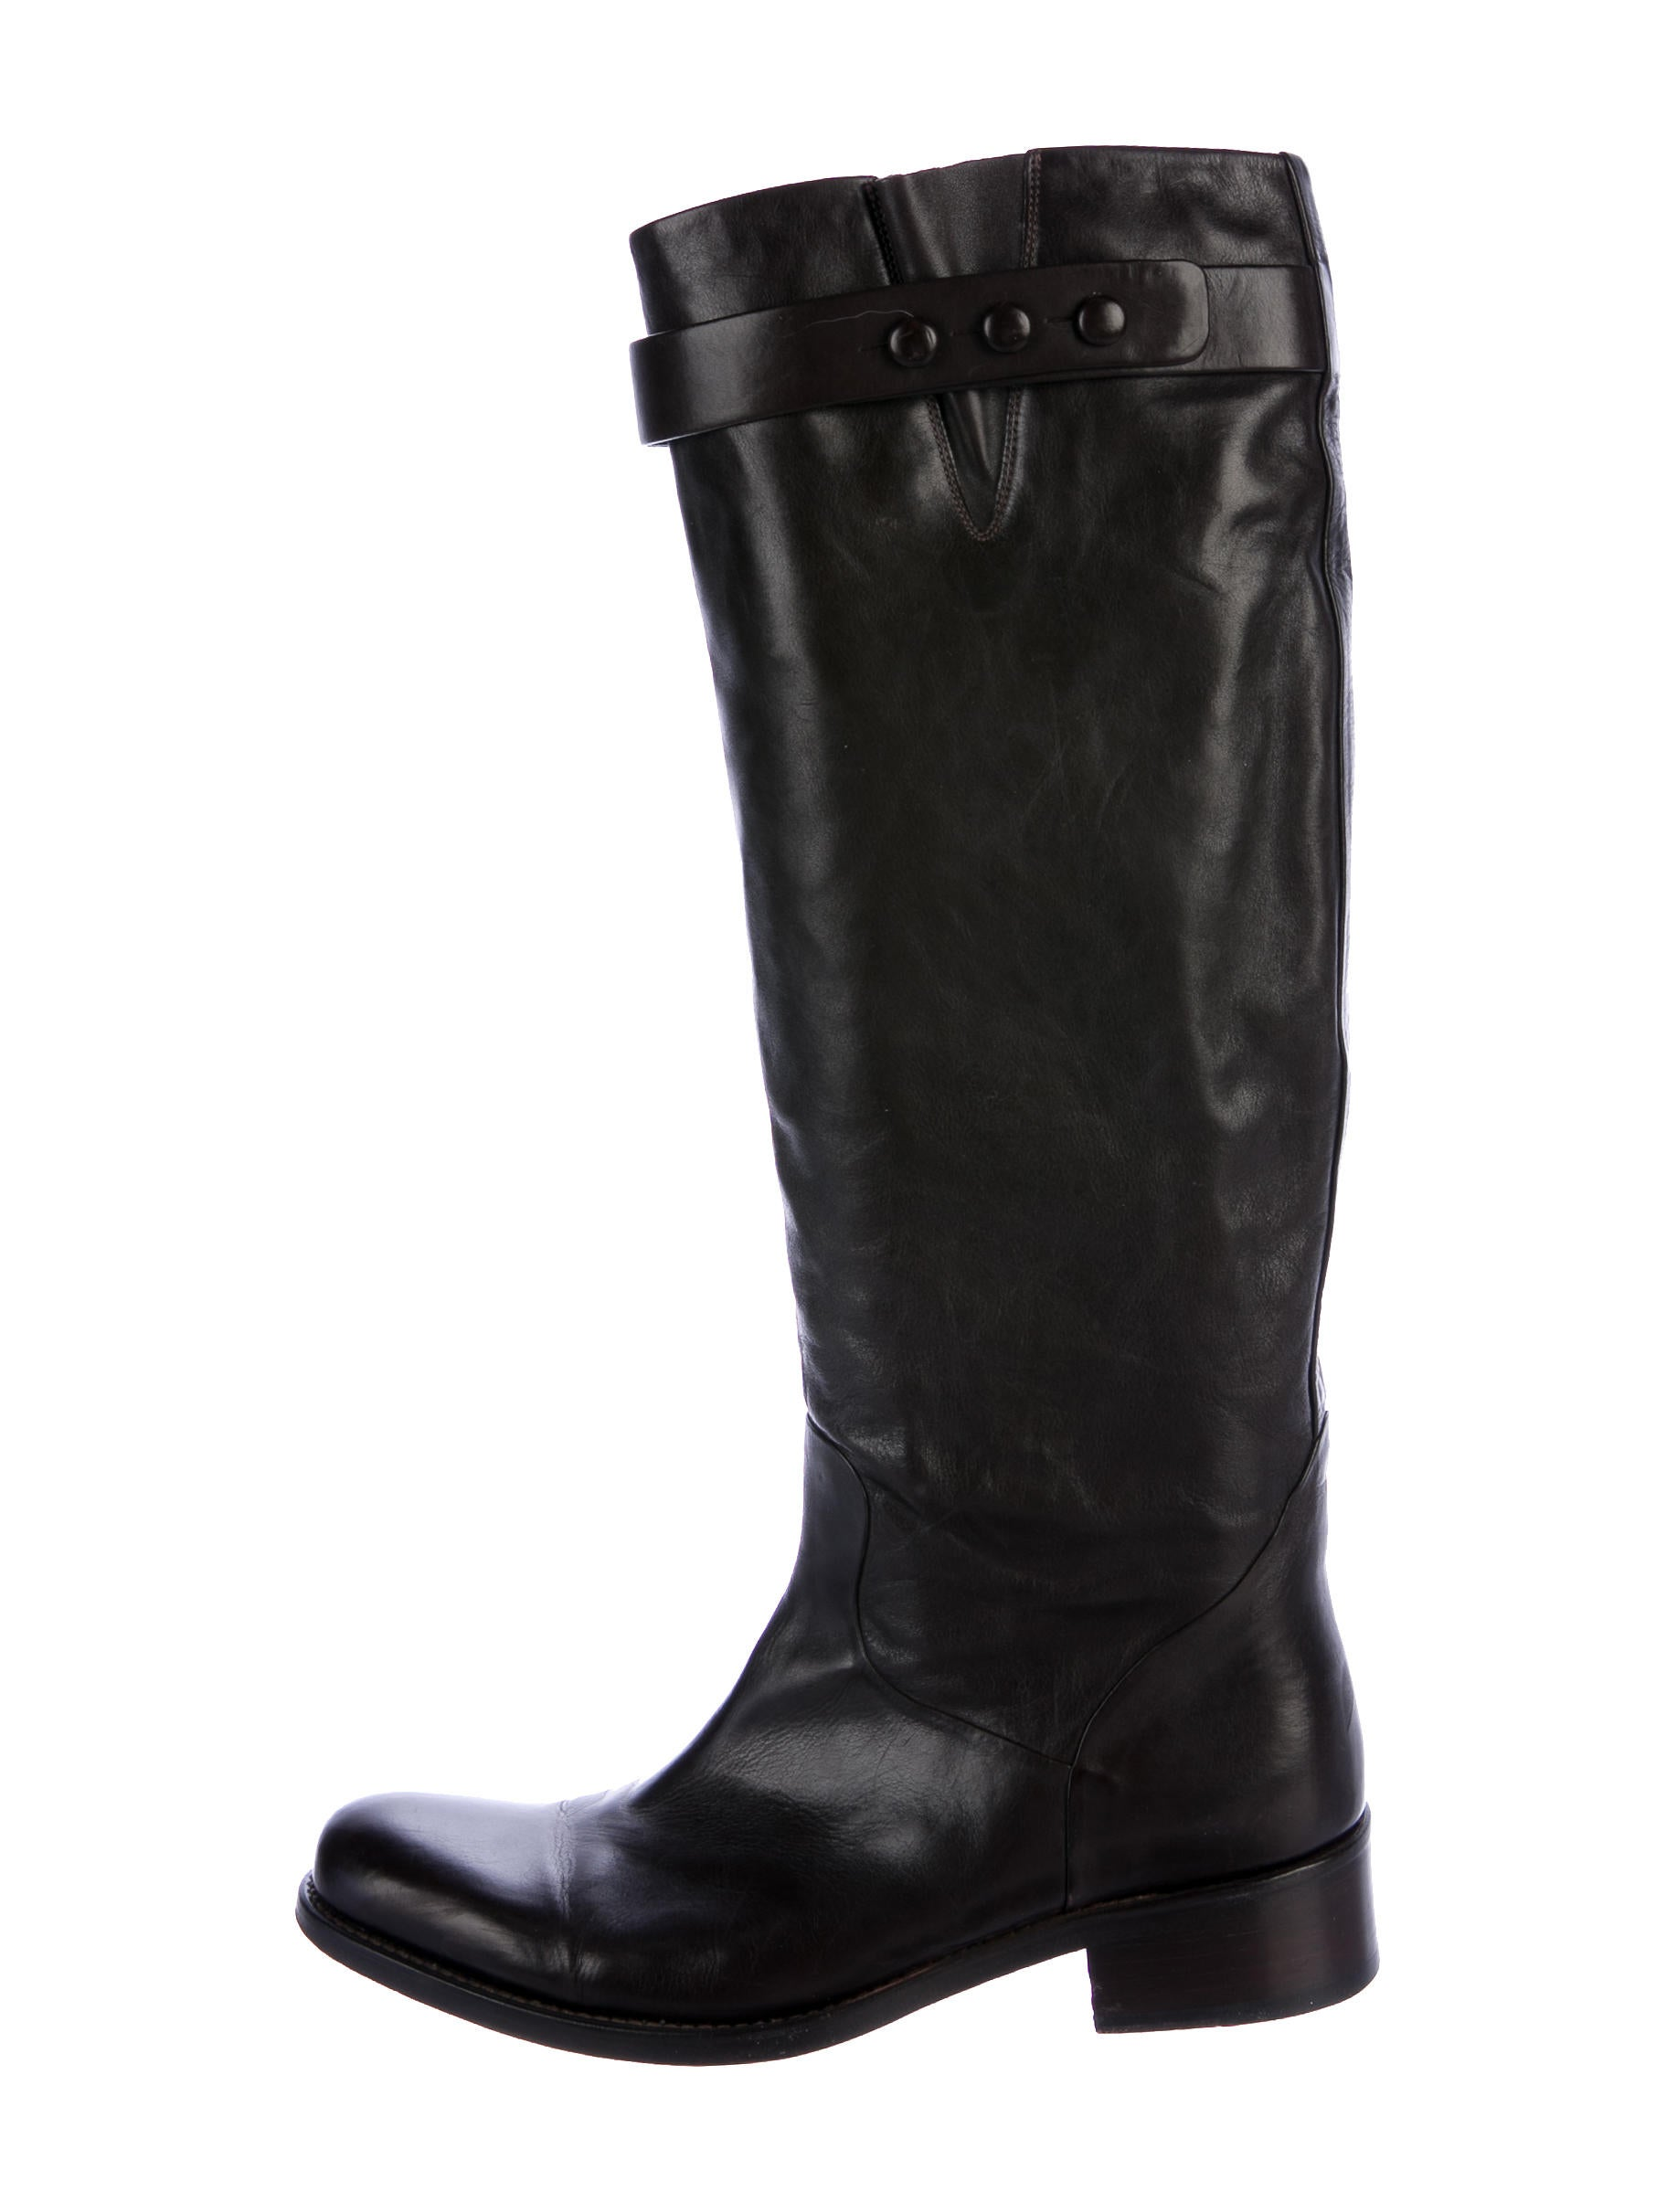 classic cheap price Freelance Leather Round-Toe Knee Boots free shipping wiki mqJvKcbO